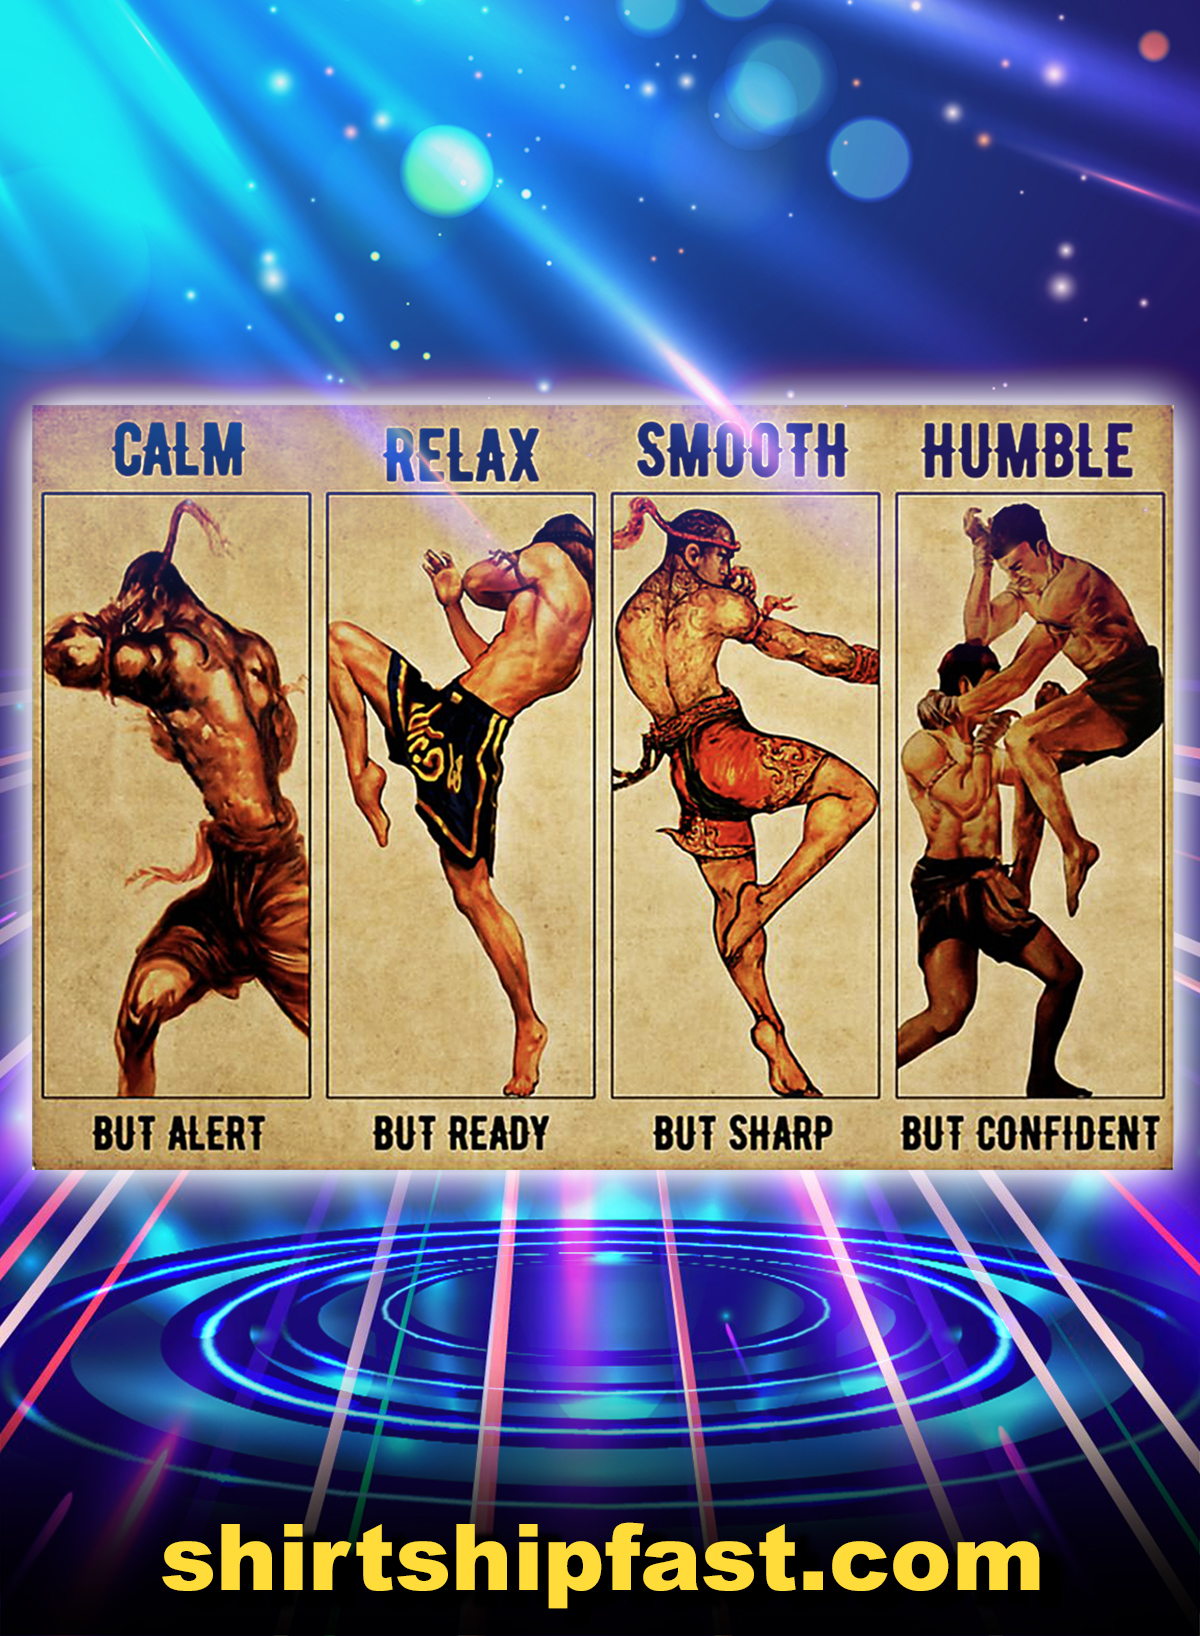 Calm relax smooth humble muay thai poster - A1